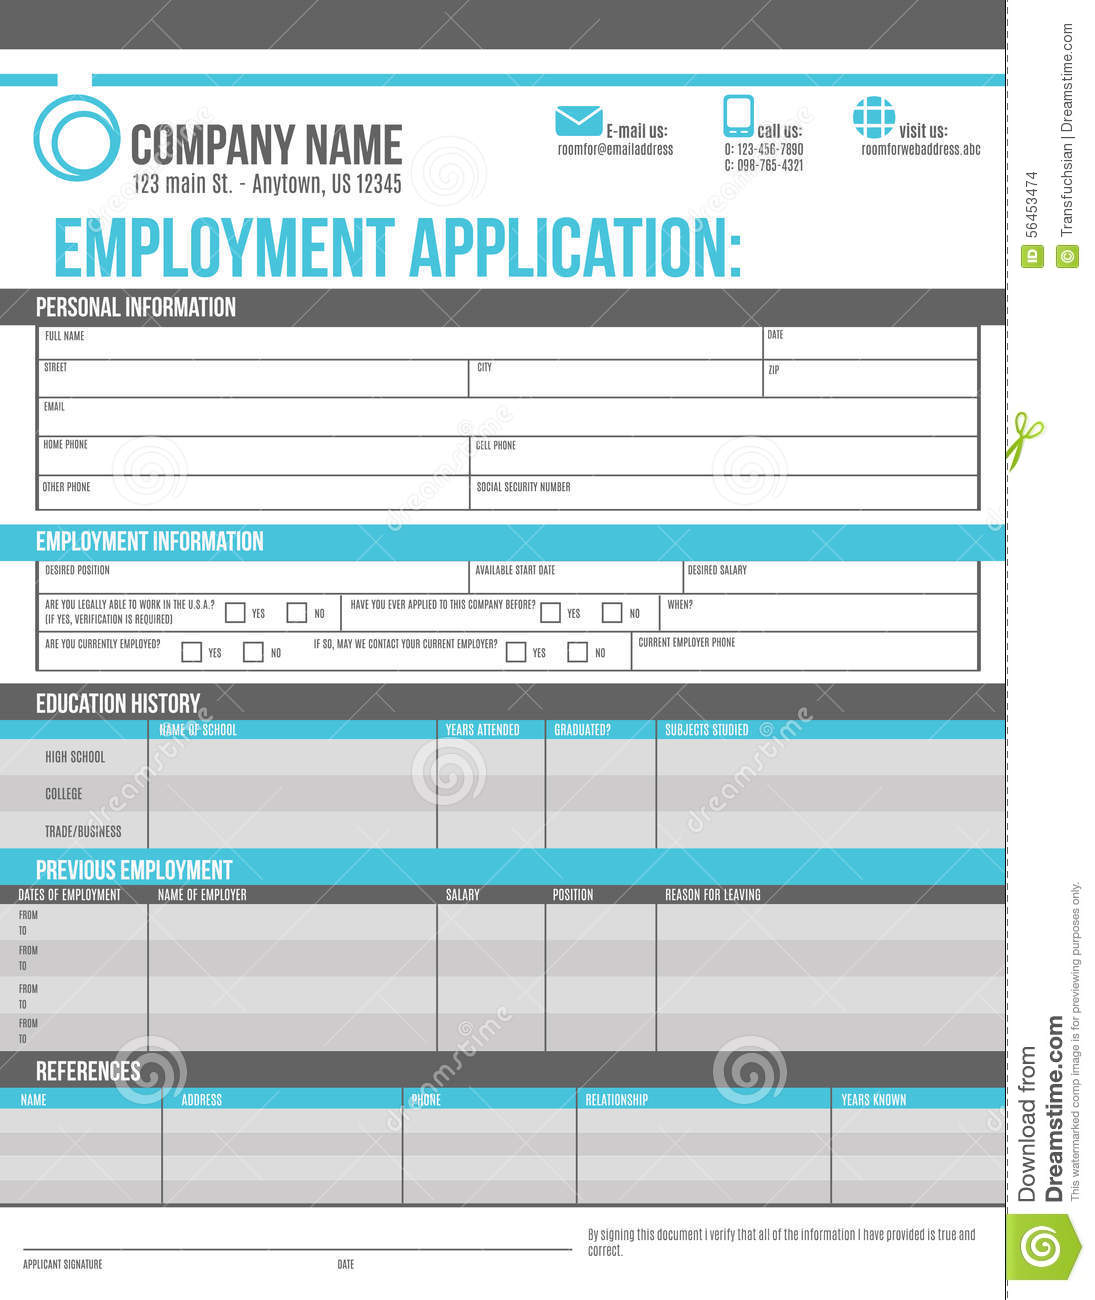 12 Job Applications All Blank Job Application Form Free Pdf Employment Download Employee Application Template Stock Vector Image 56453474